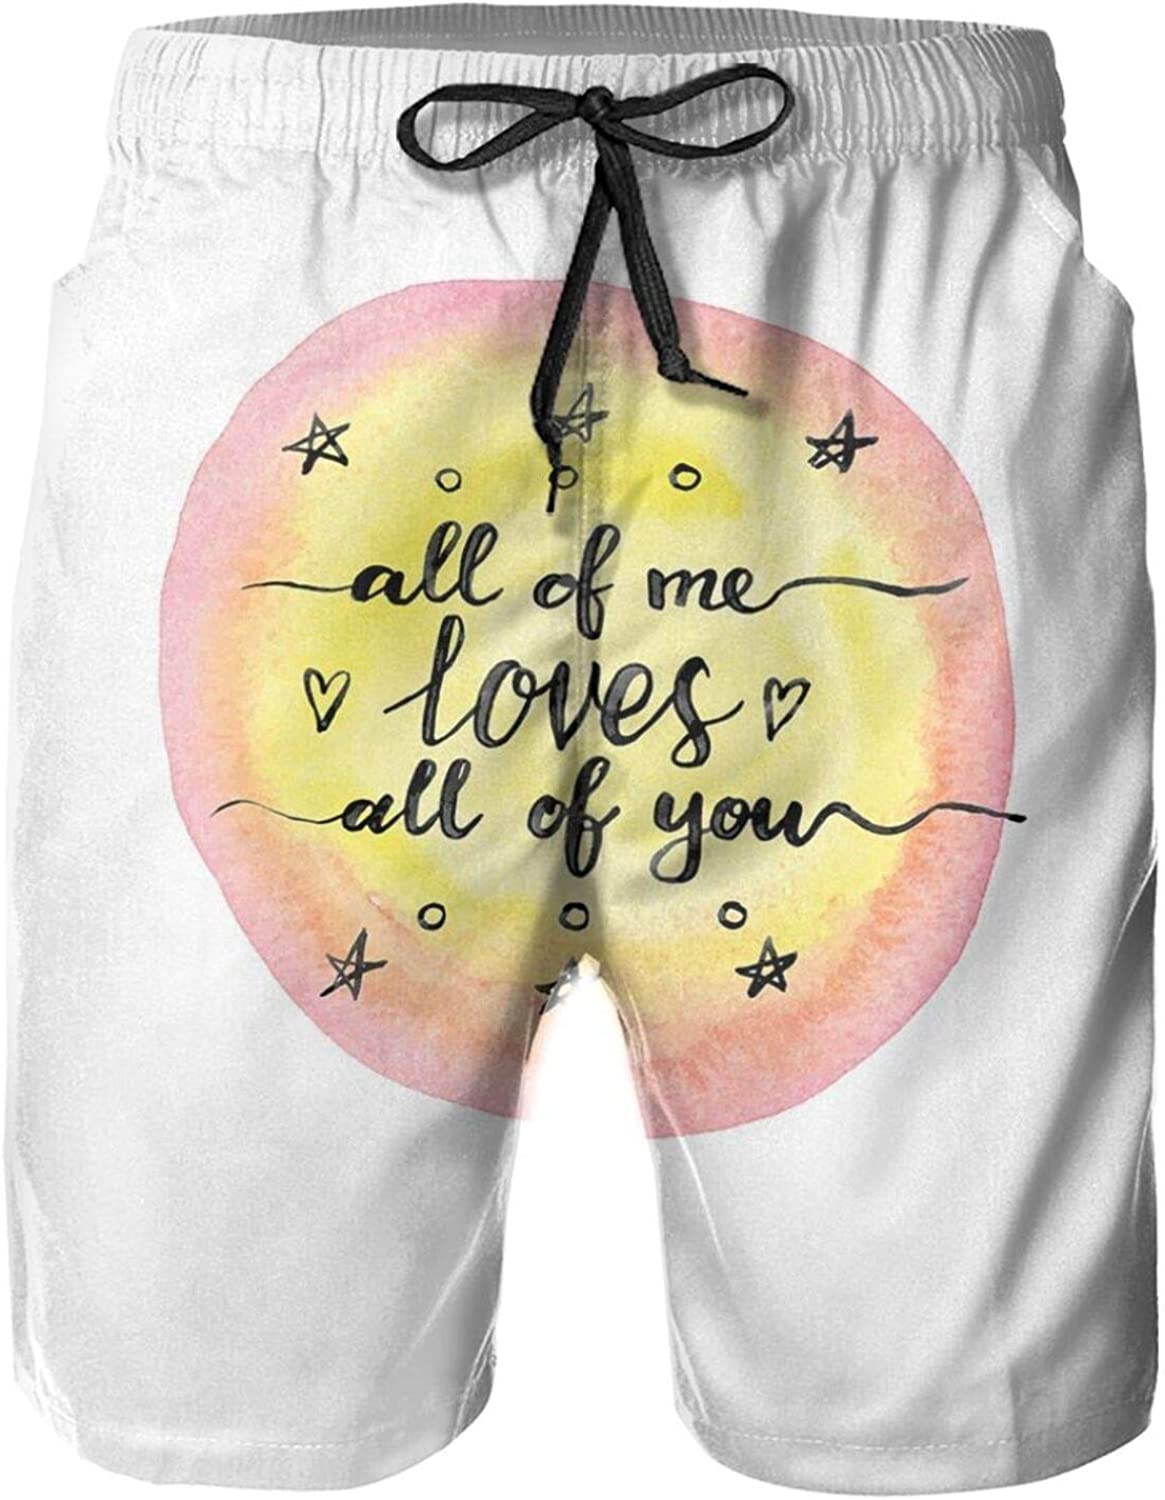 All of Me Loves All of You Hand Drawn Calligraphic Valentines Quote Watercolor Swimming Trunks for Men Beach Shorts Casual Style,M